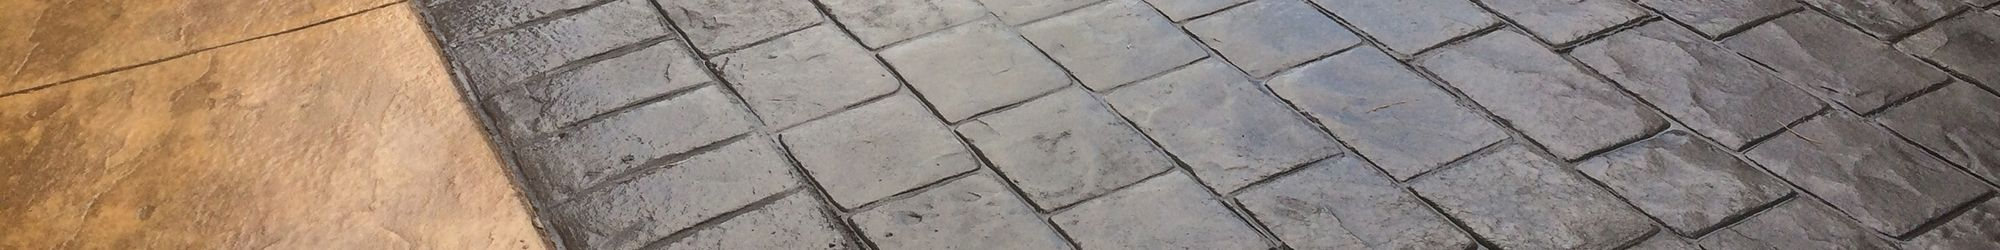 Imprinted Concrete Driveways & Patios